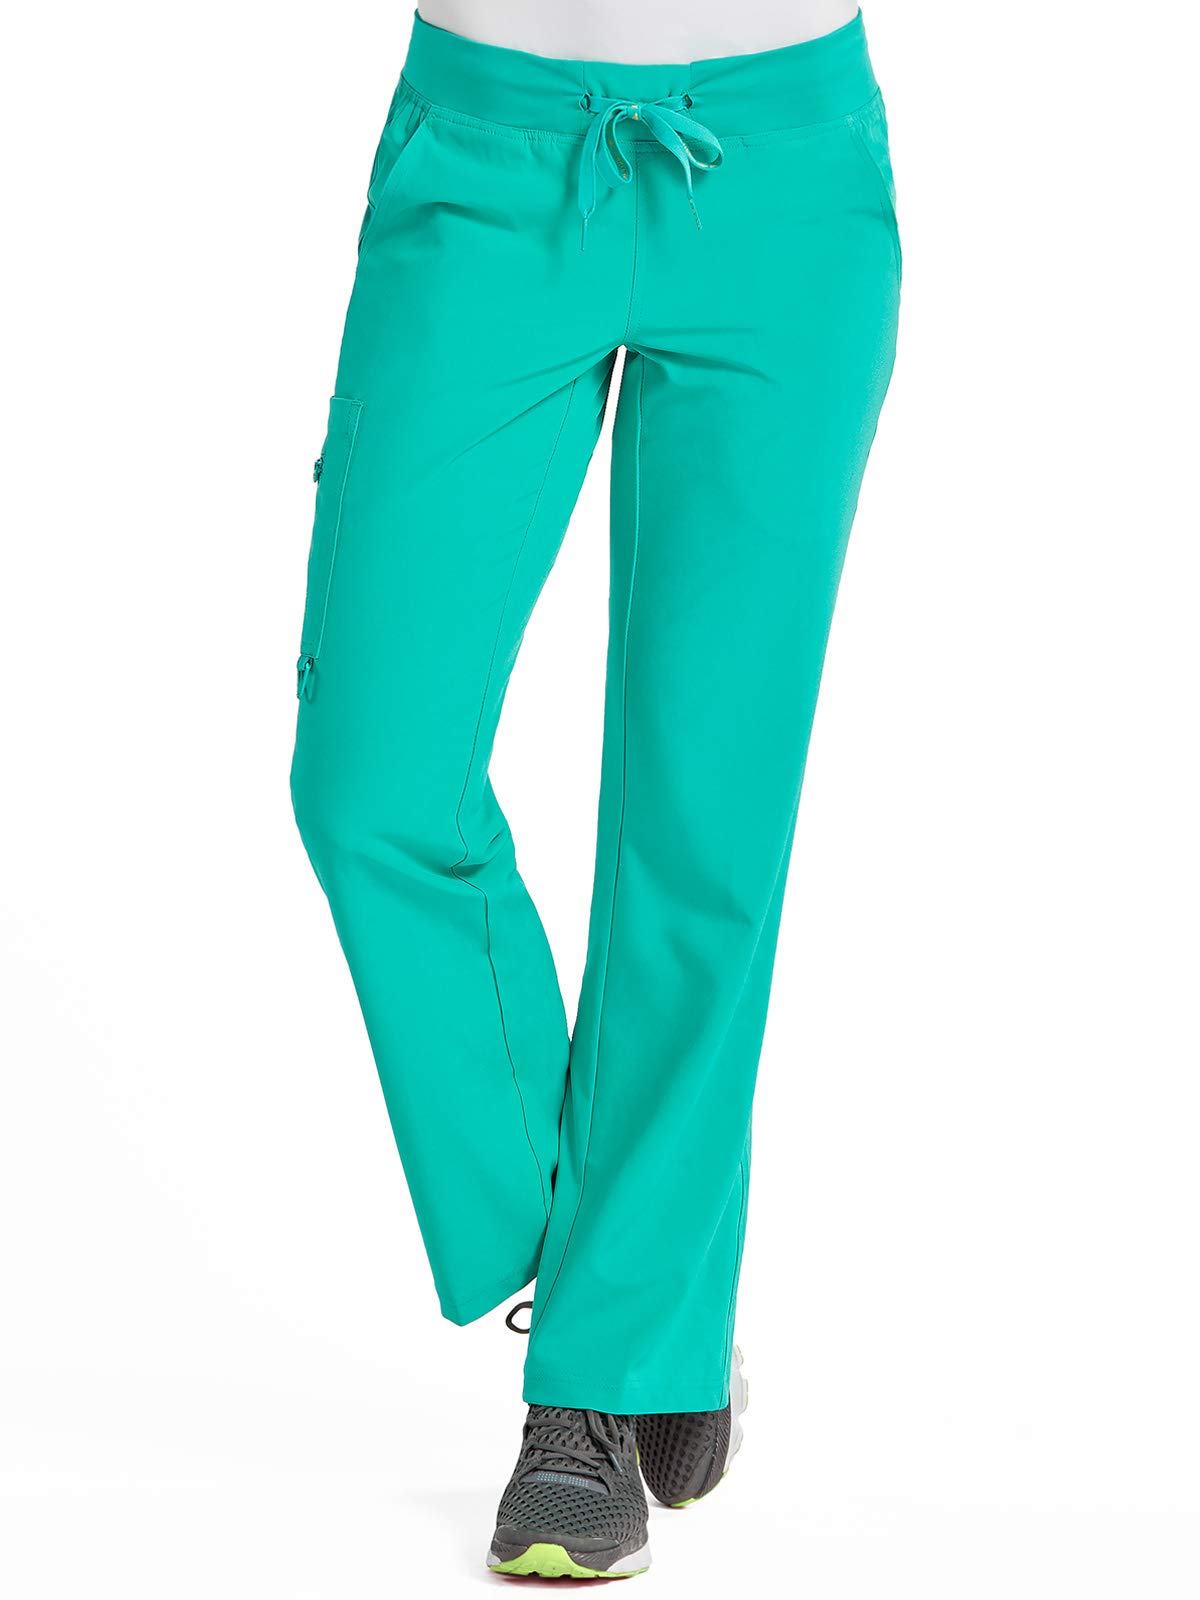 Med Couture Activate Women's Yoga Cargo Pocket Scrub Pant, Medium, Aquamarine by Med Couture